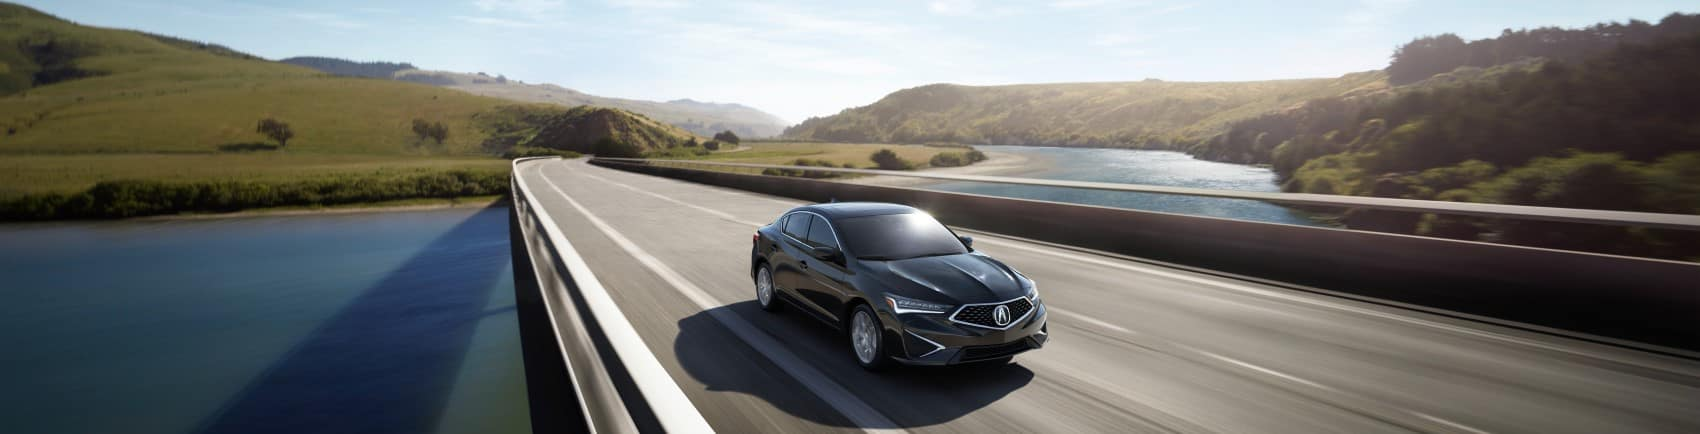 2022 Acura ILX dark driving on a highway